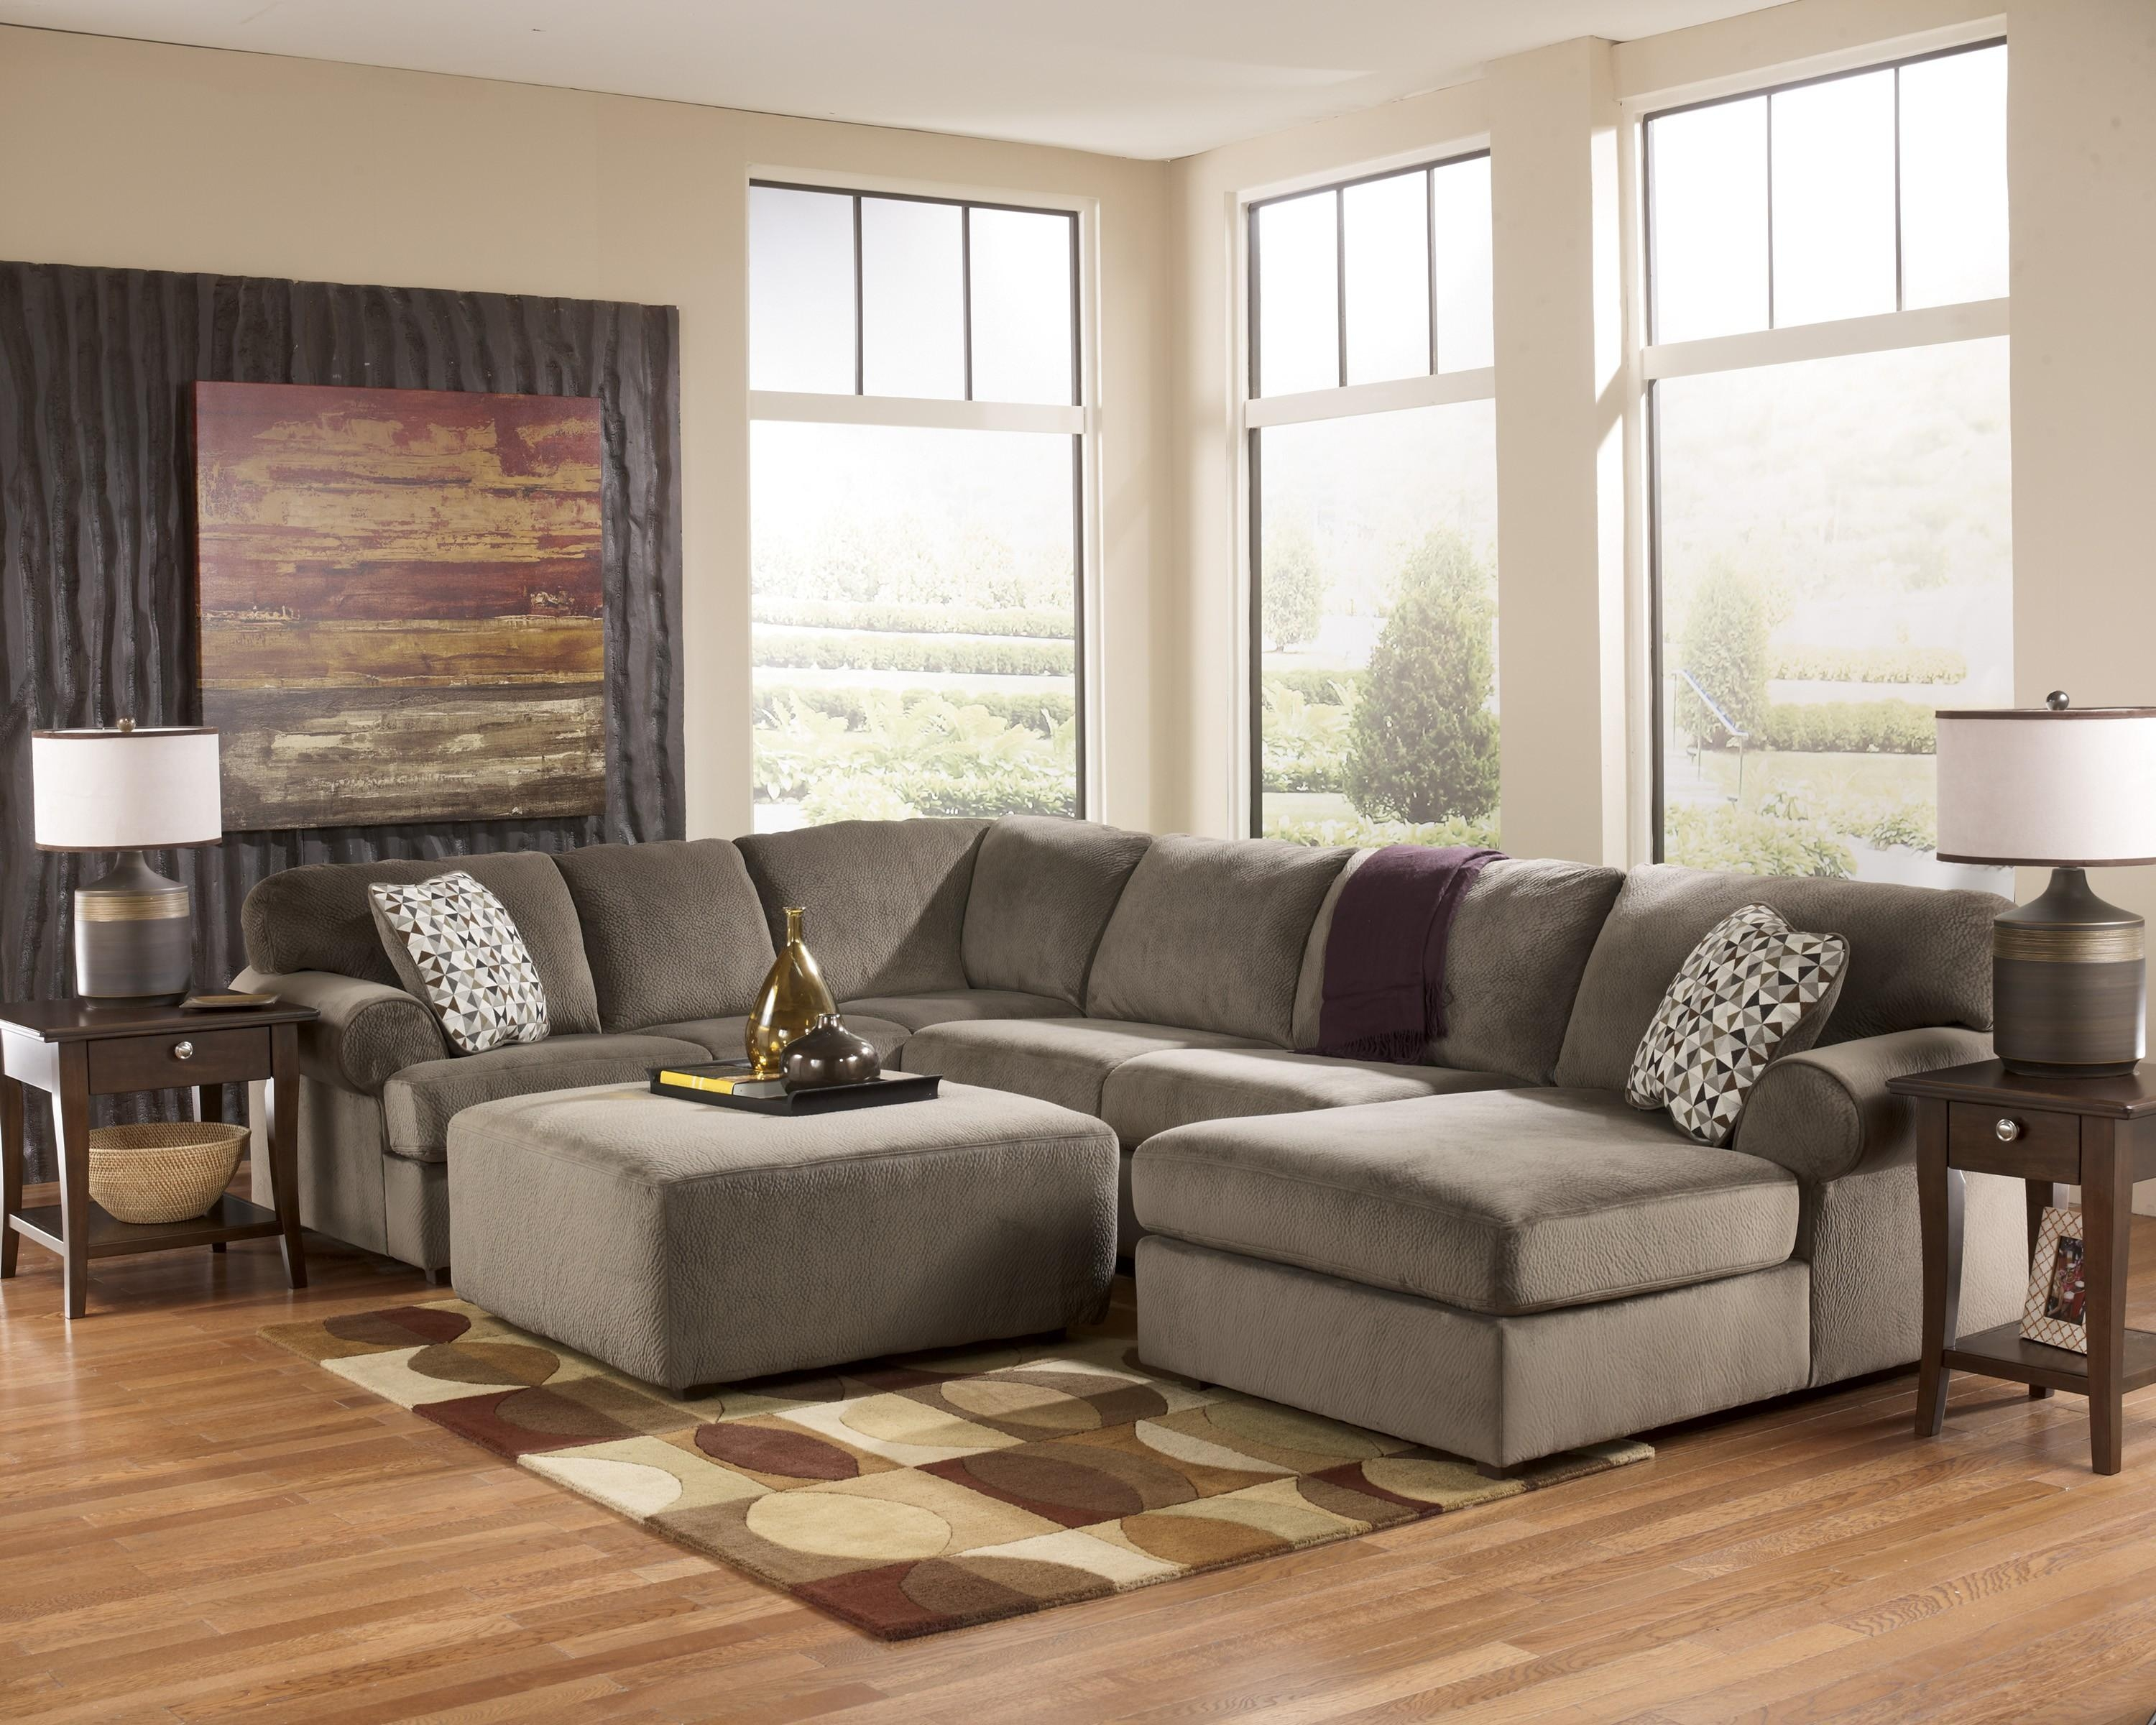 Interior: Luxury Oversized Sectional Sofa For Awesome Living Room Throughout Window Sofas (View 12 of 20)